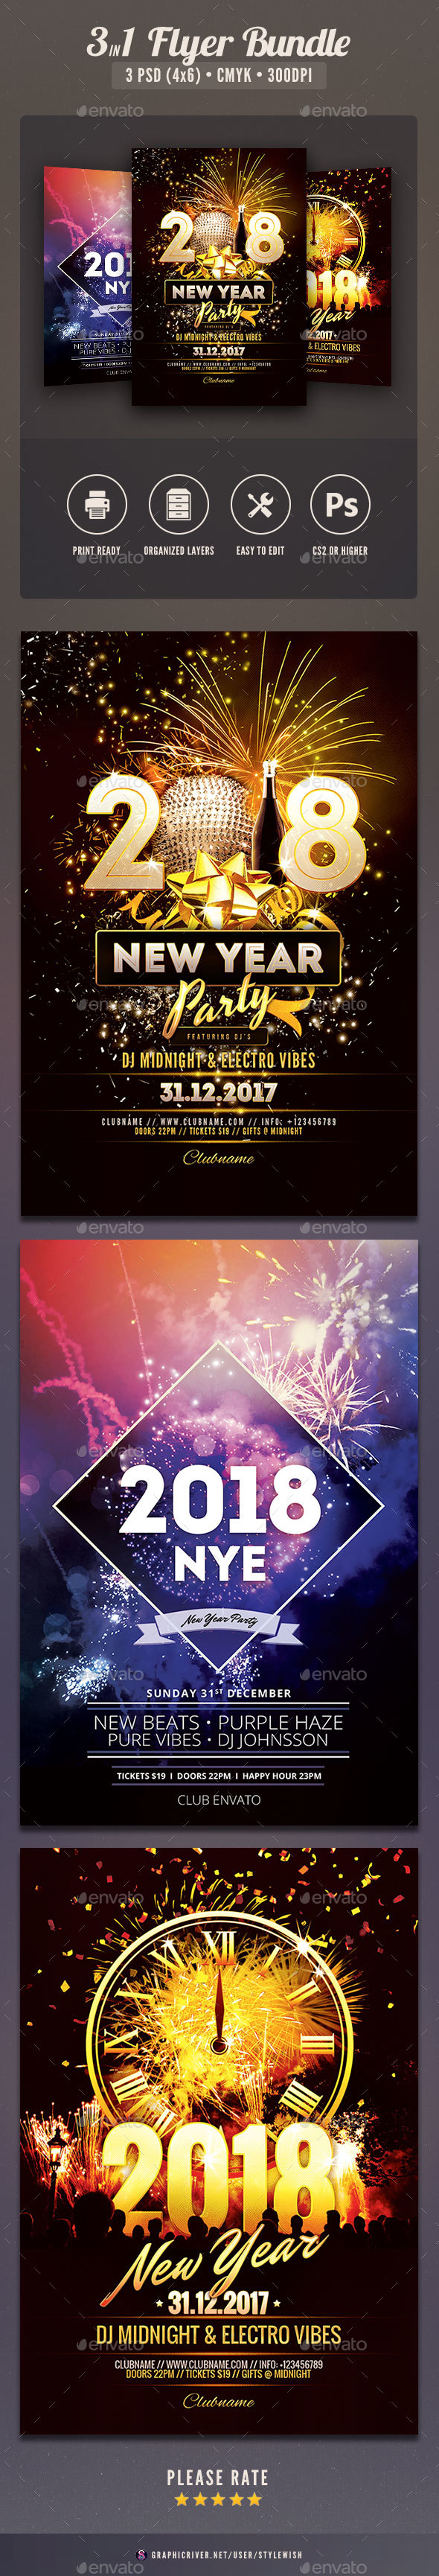 New Year Flyer Bundle Vol.09 - Clubs & Parties Events